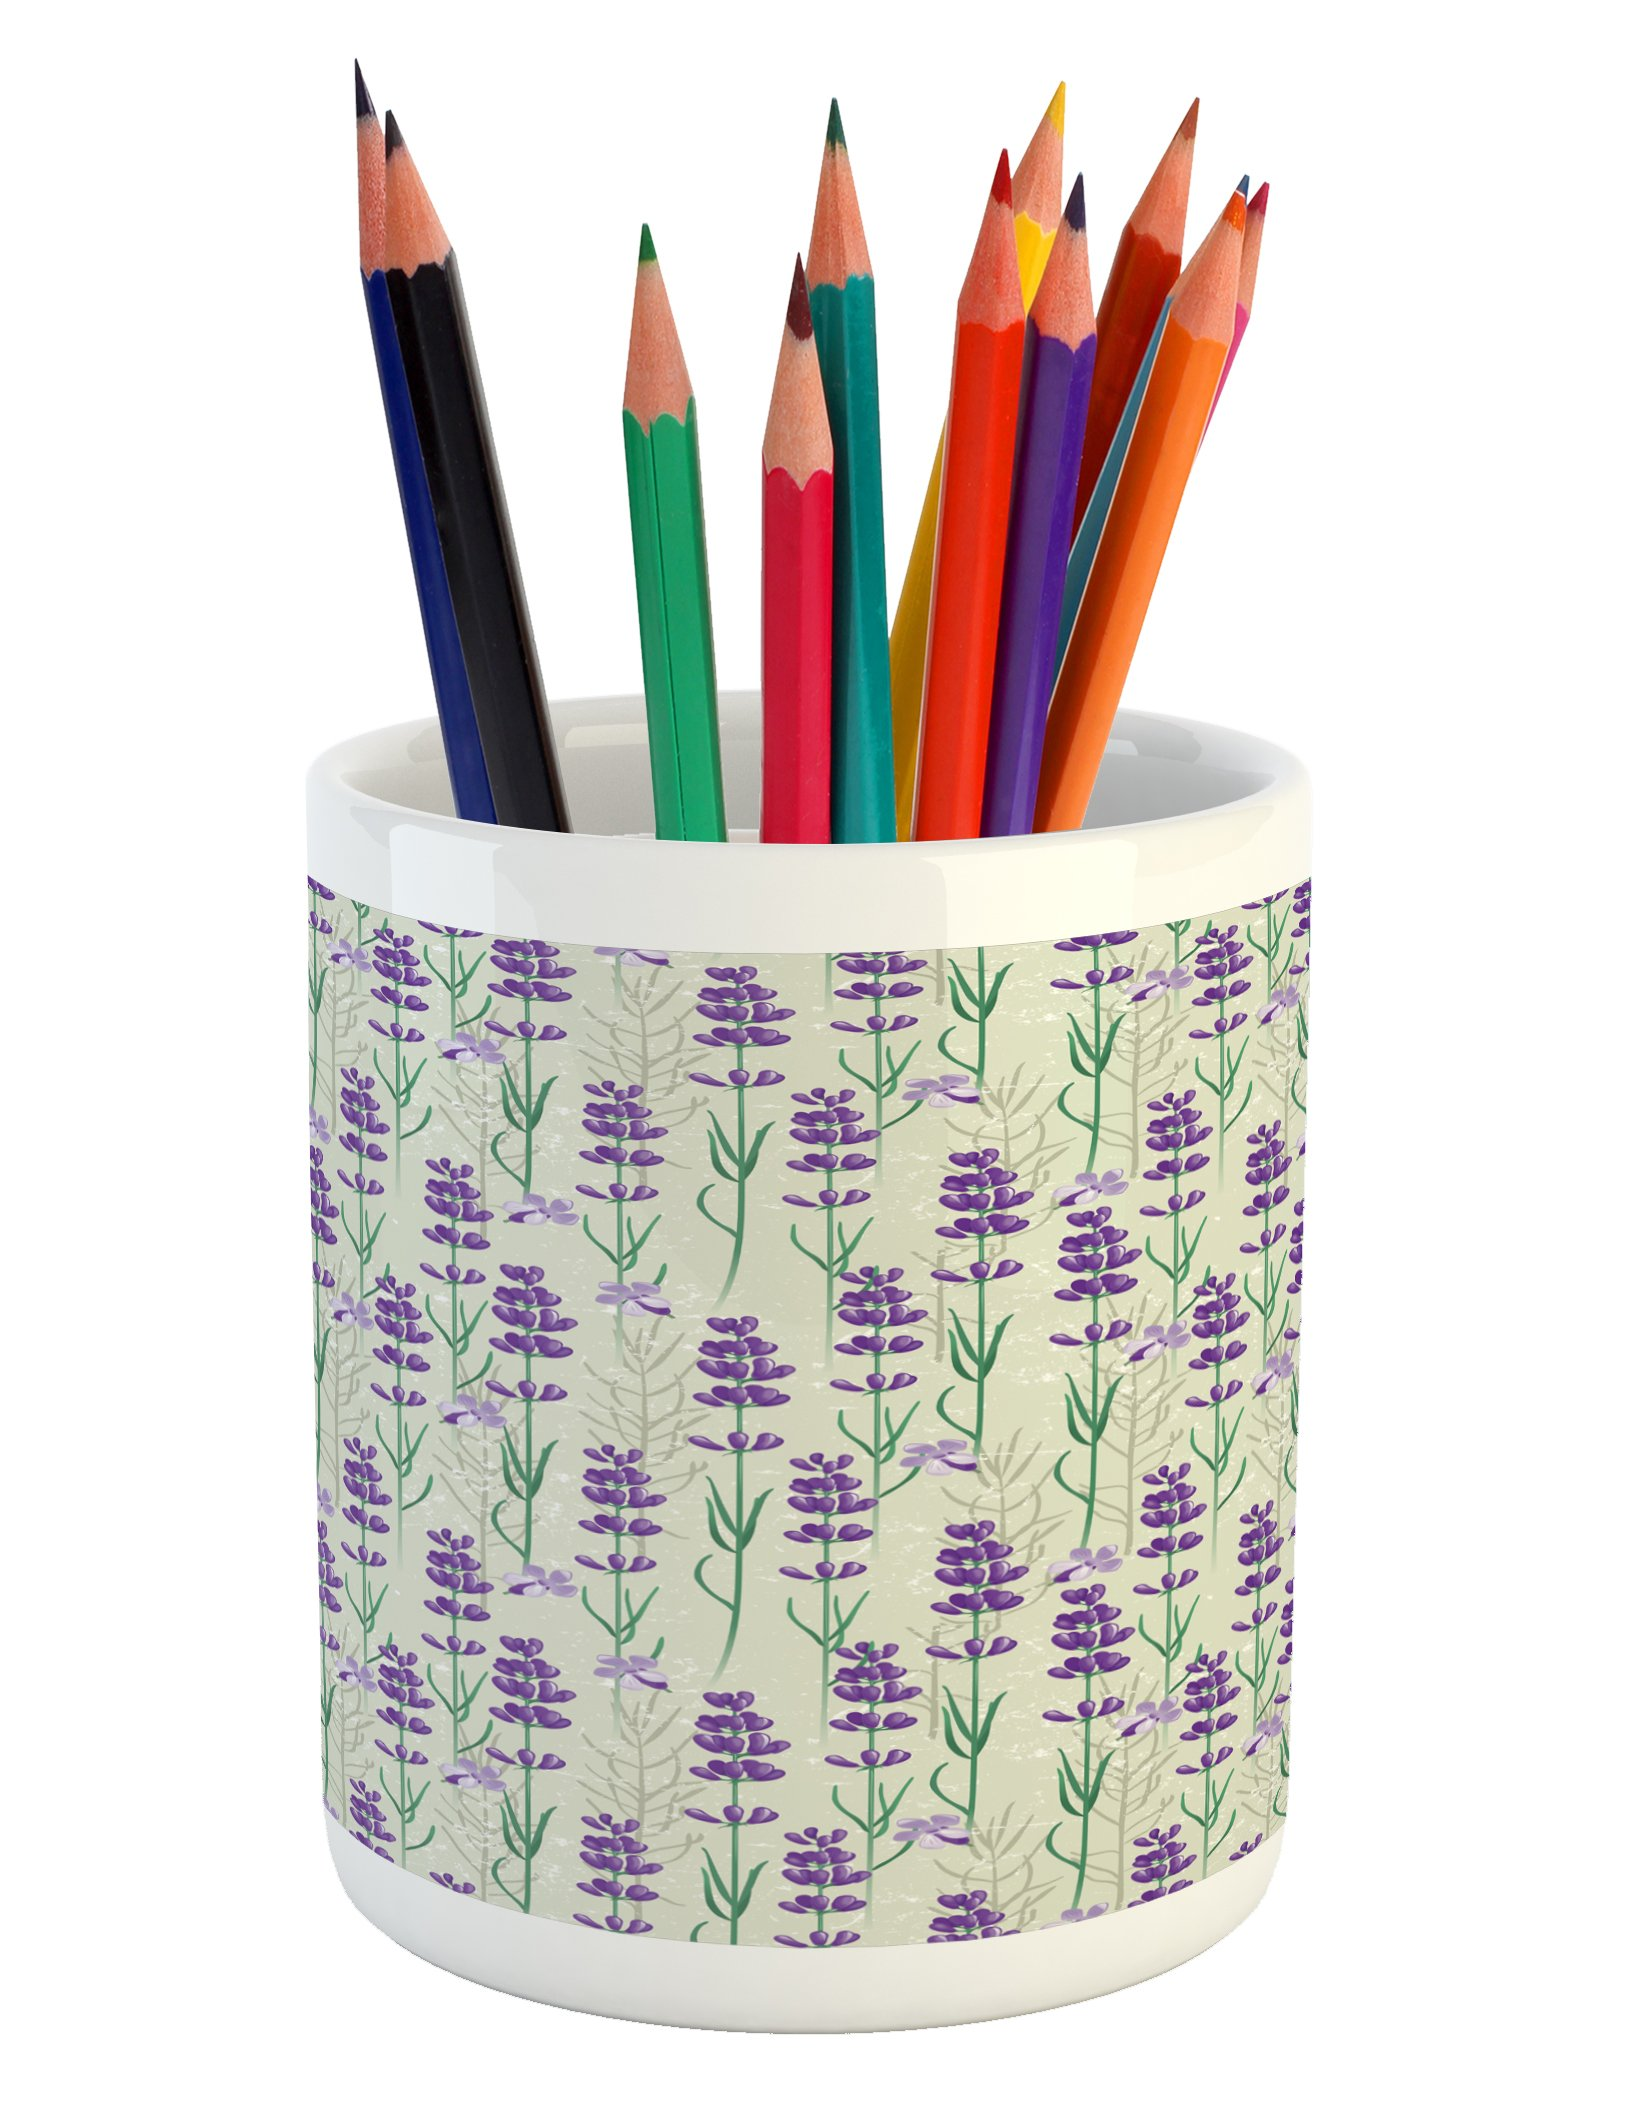 Ambesonne Lavender Pencil Pen Holder, Botanical Pattern with Fresh Herbs Aromatherapy Spa Theme, Printed Ceramic Pencil Pen Holder for Desk Office Accessory, Pale Sage Green Violet and Green